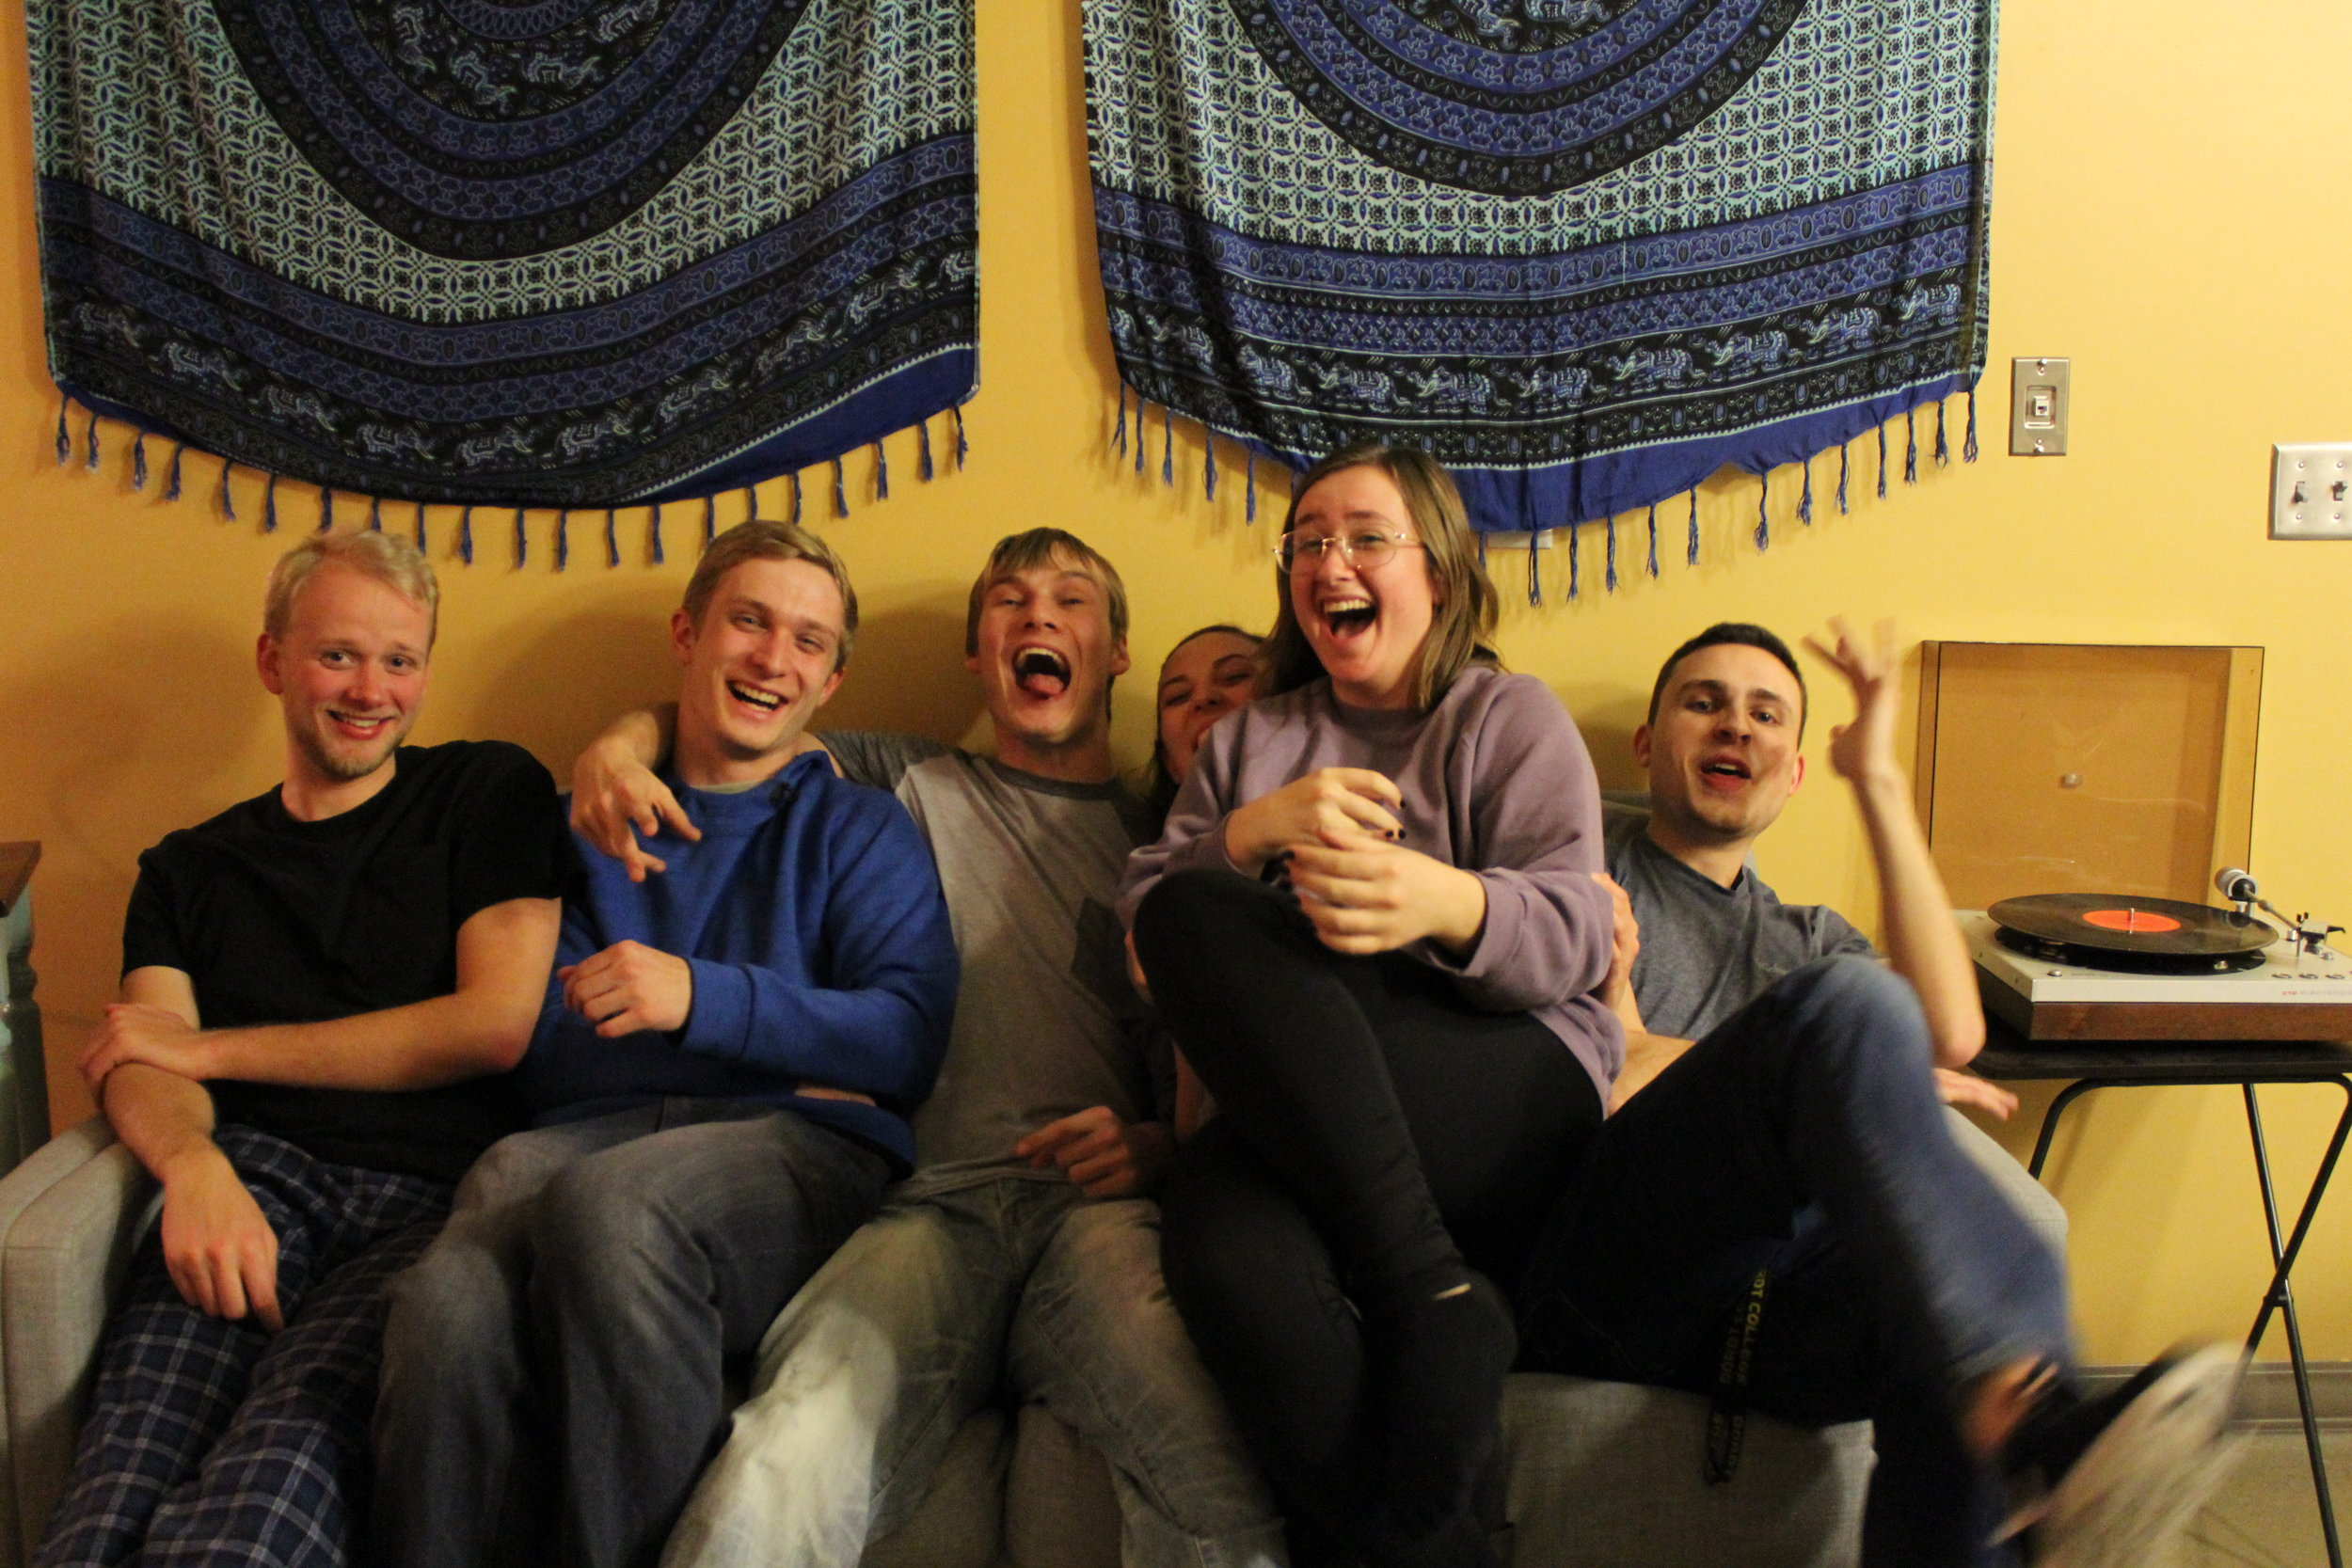 Here's Player 2 Productions' 2017 team (Josh, Ben, Josh, Annie, Emi, and Jacob) awkwardly trying to squeeze onto a single couch and take a self-timed photo at 3:00am after we finished filming.